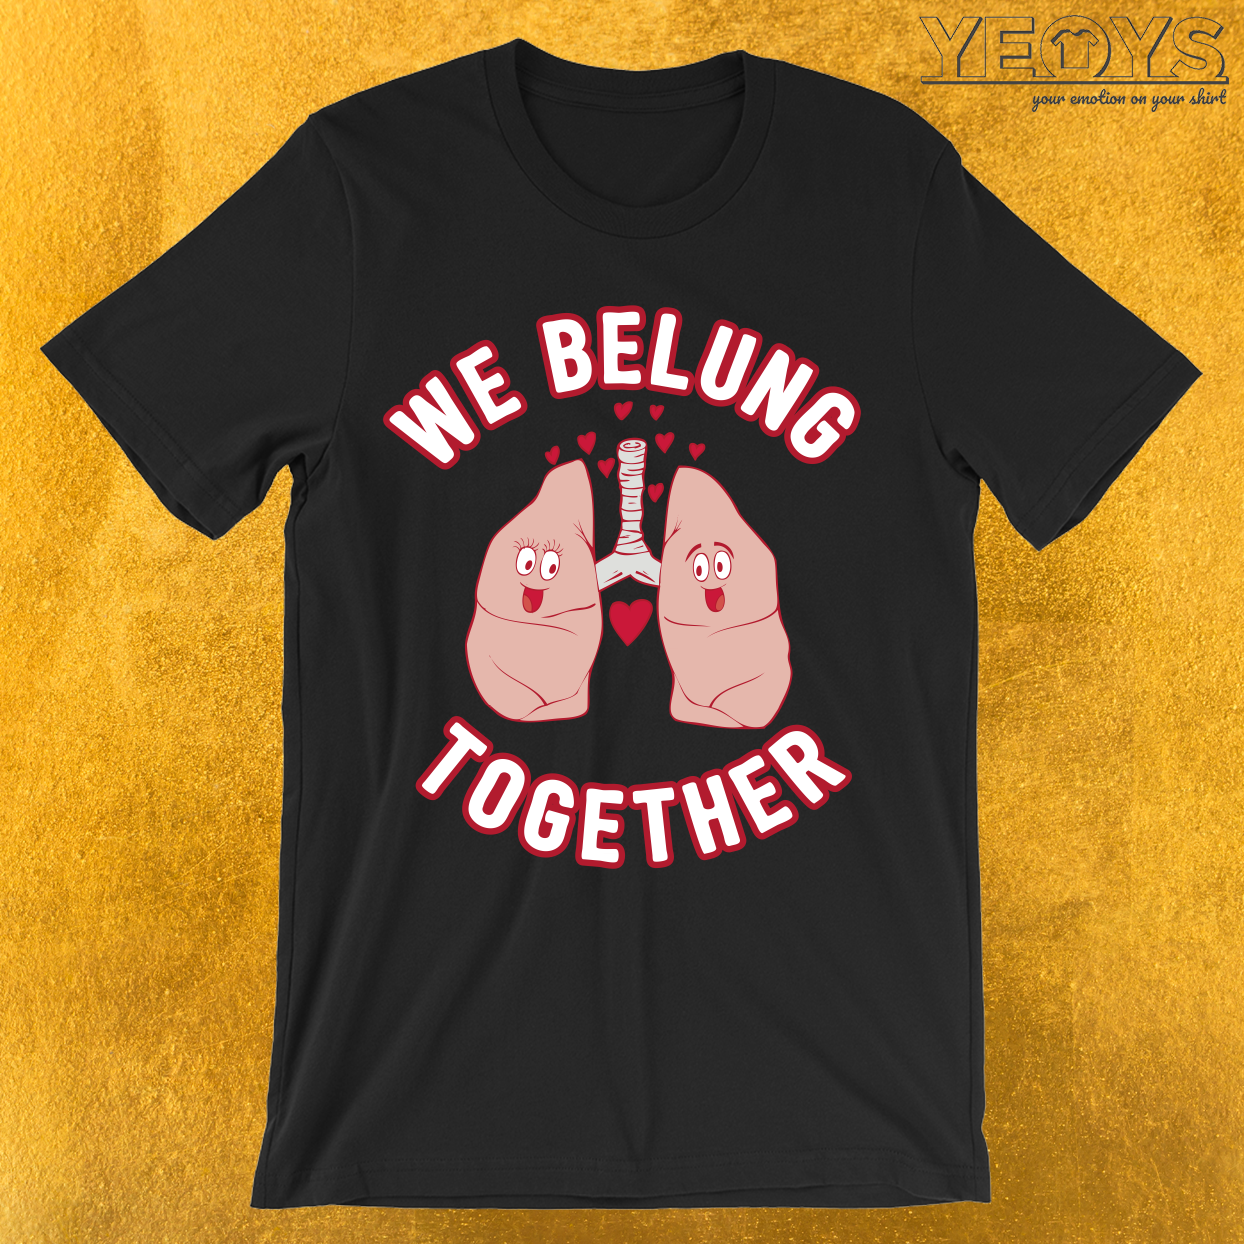 We Belung Together T-Shirt